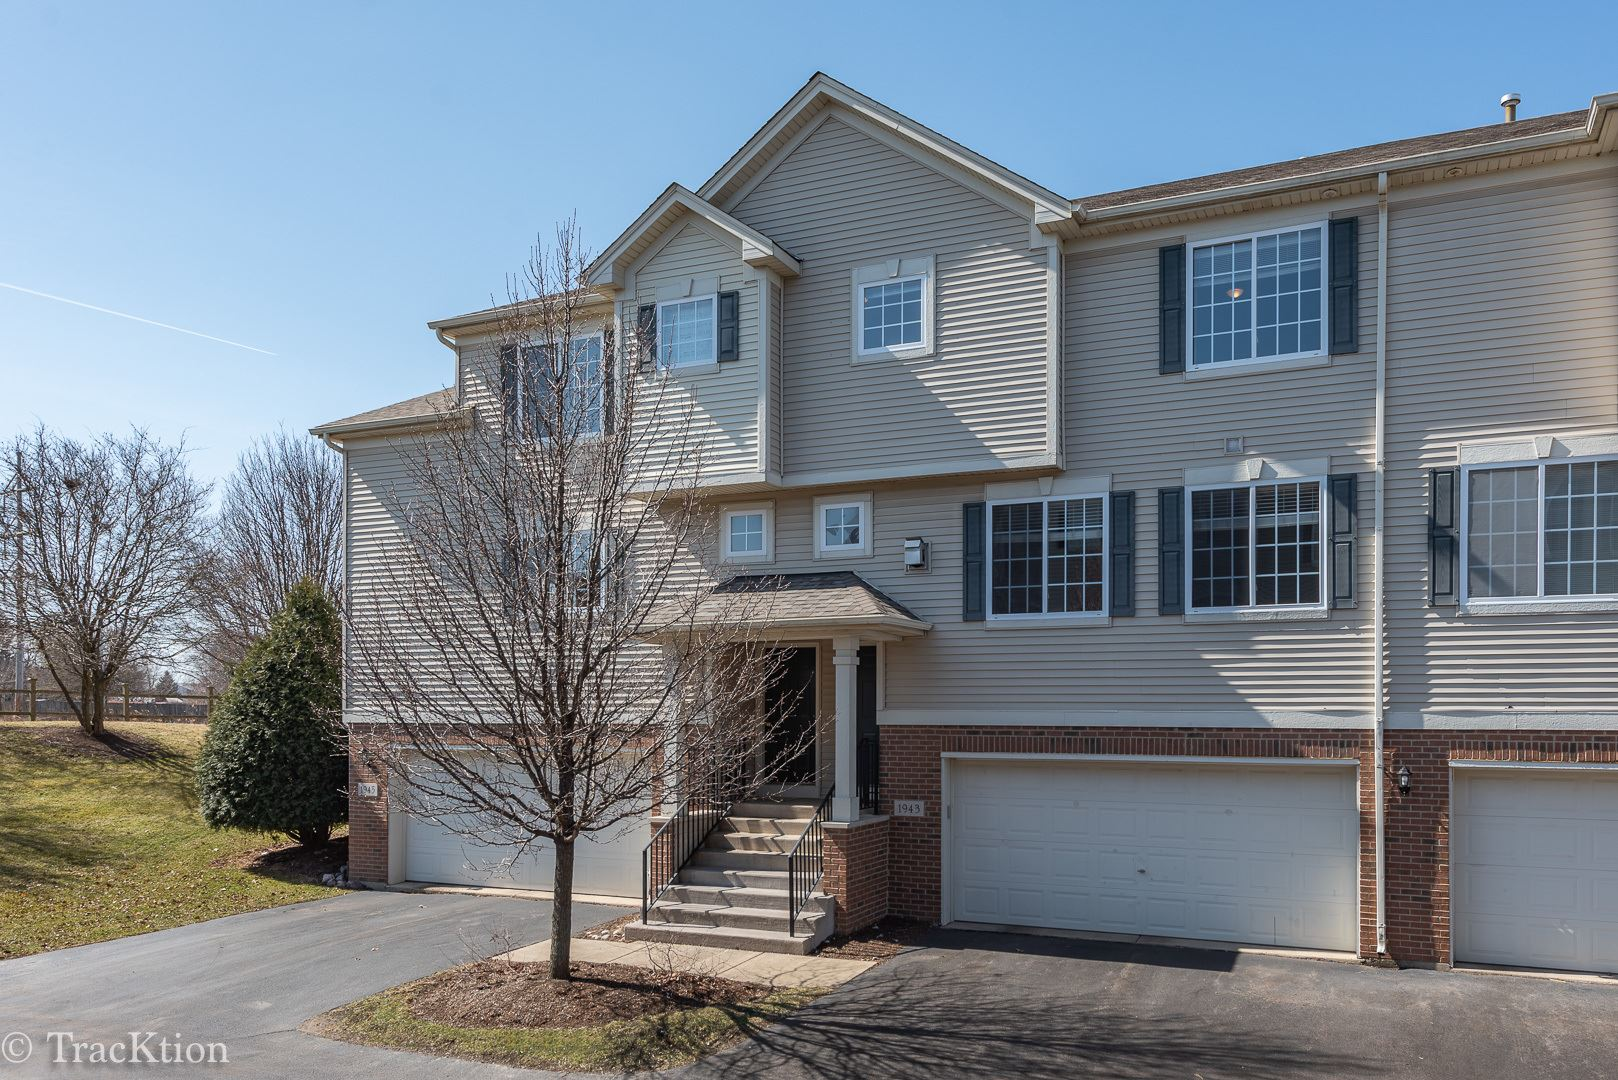 1943 INDIAN HILL Lane, Aurora, IL 60503 - #: 10627994